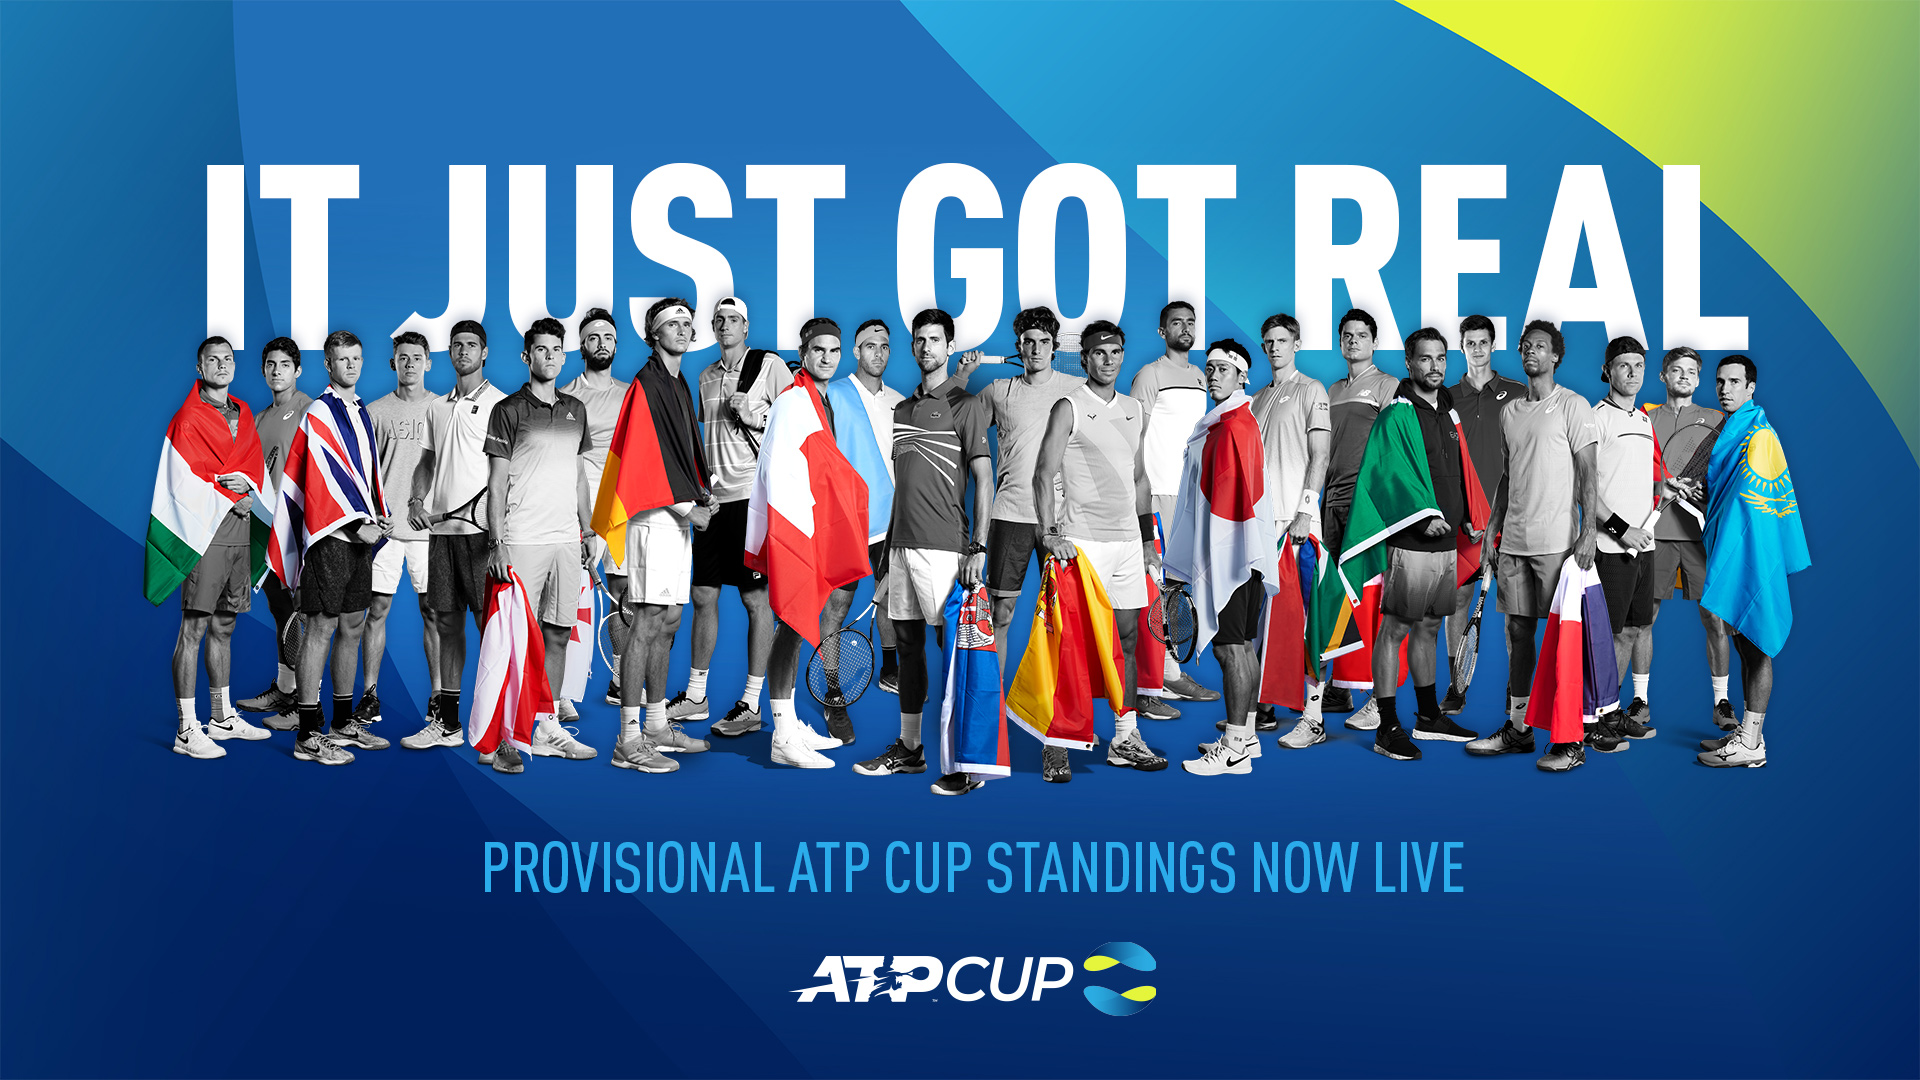 The 2019 ATP Cup Standings are now live and available to view